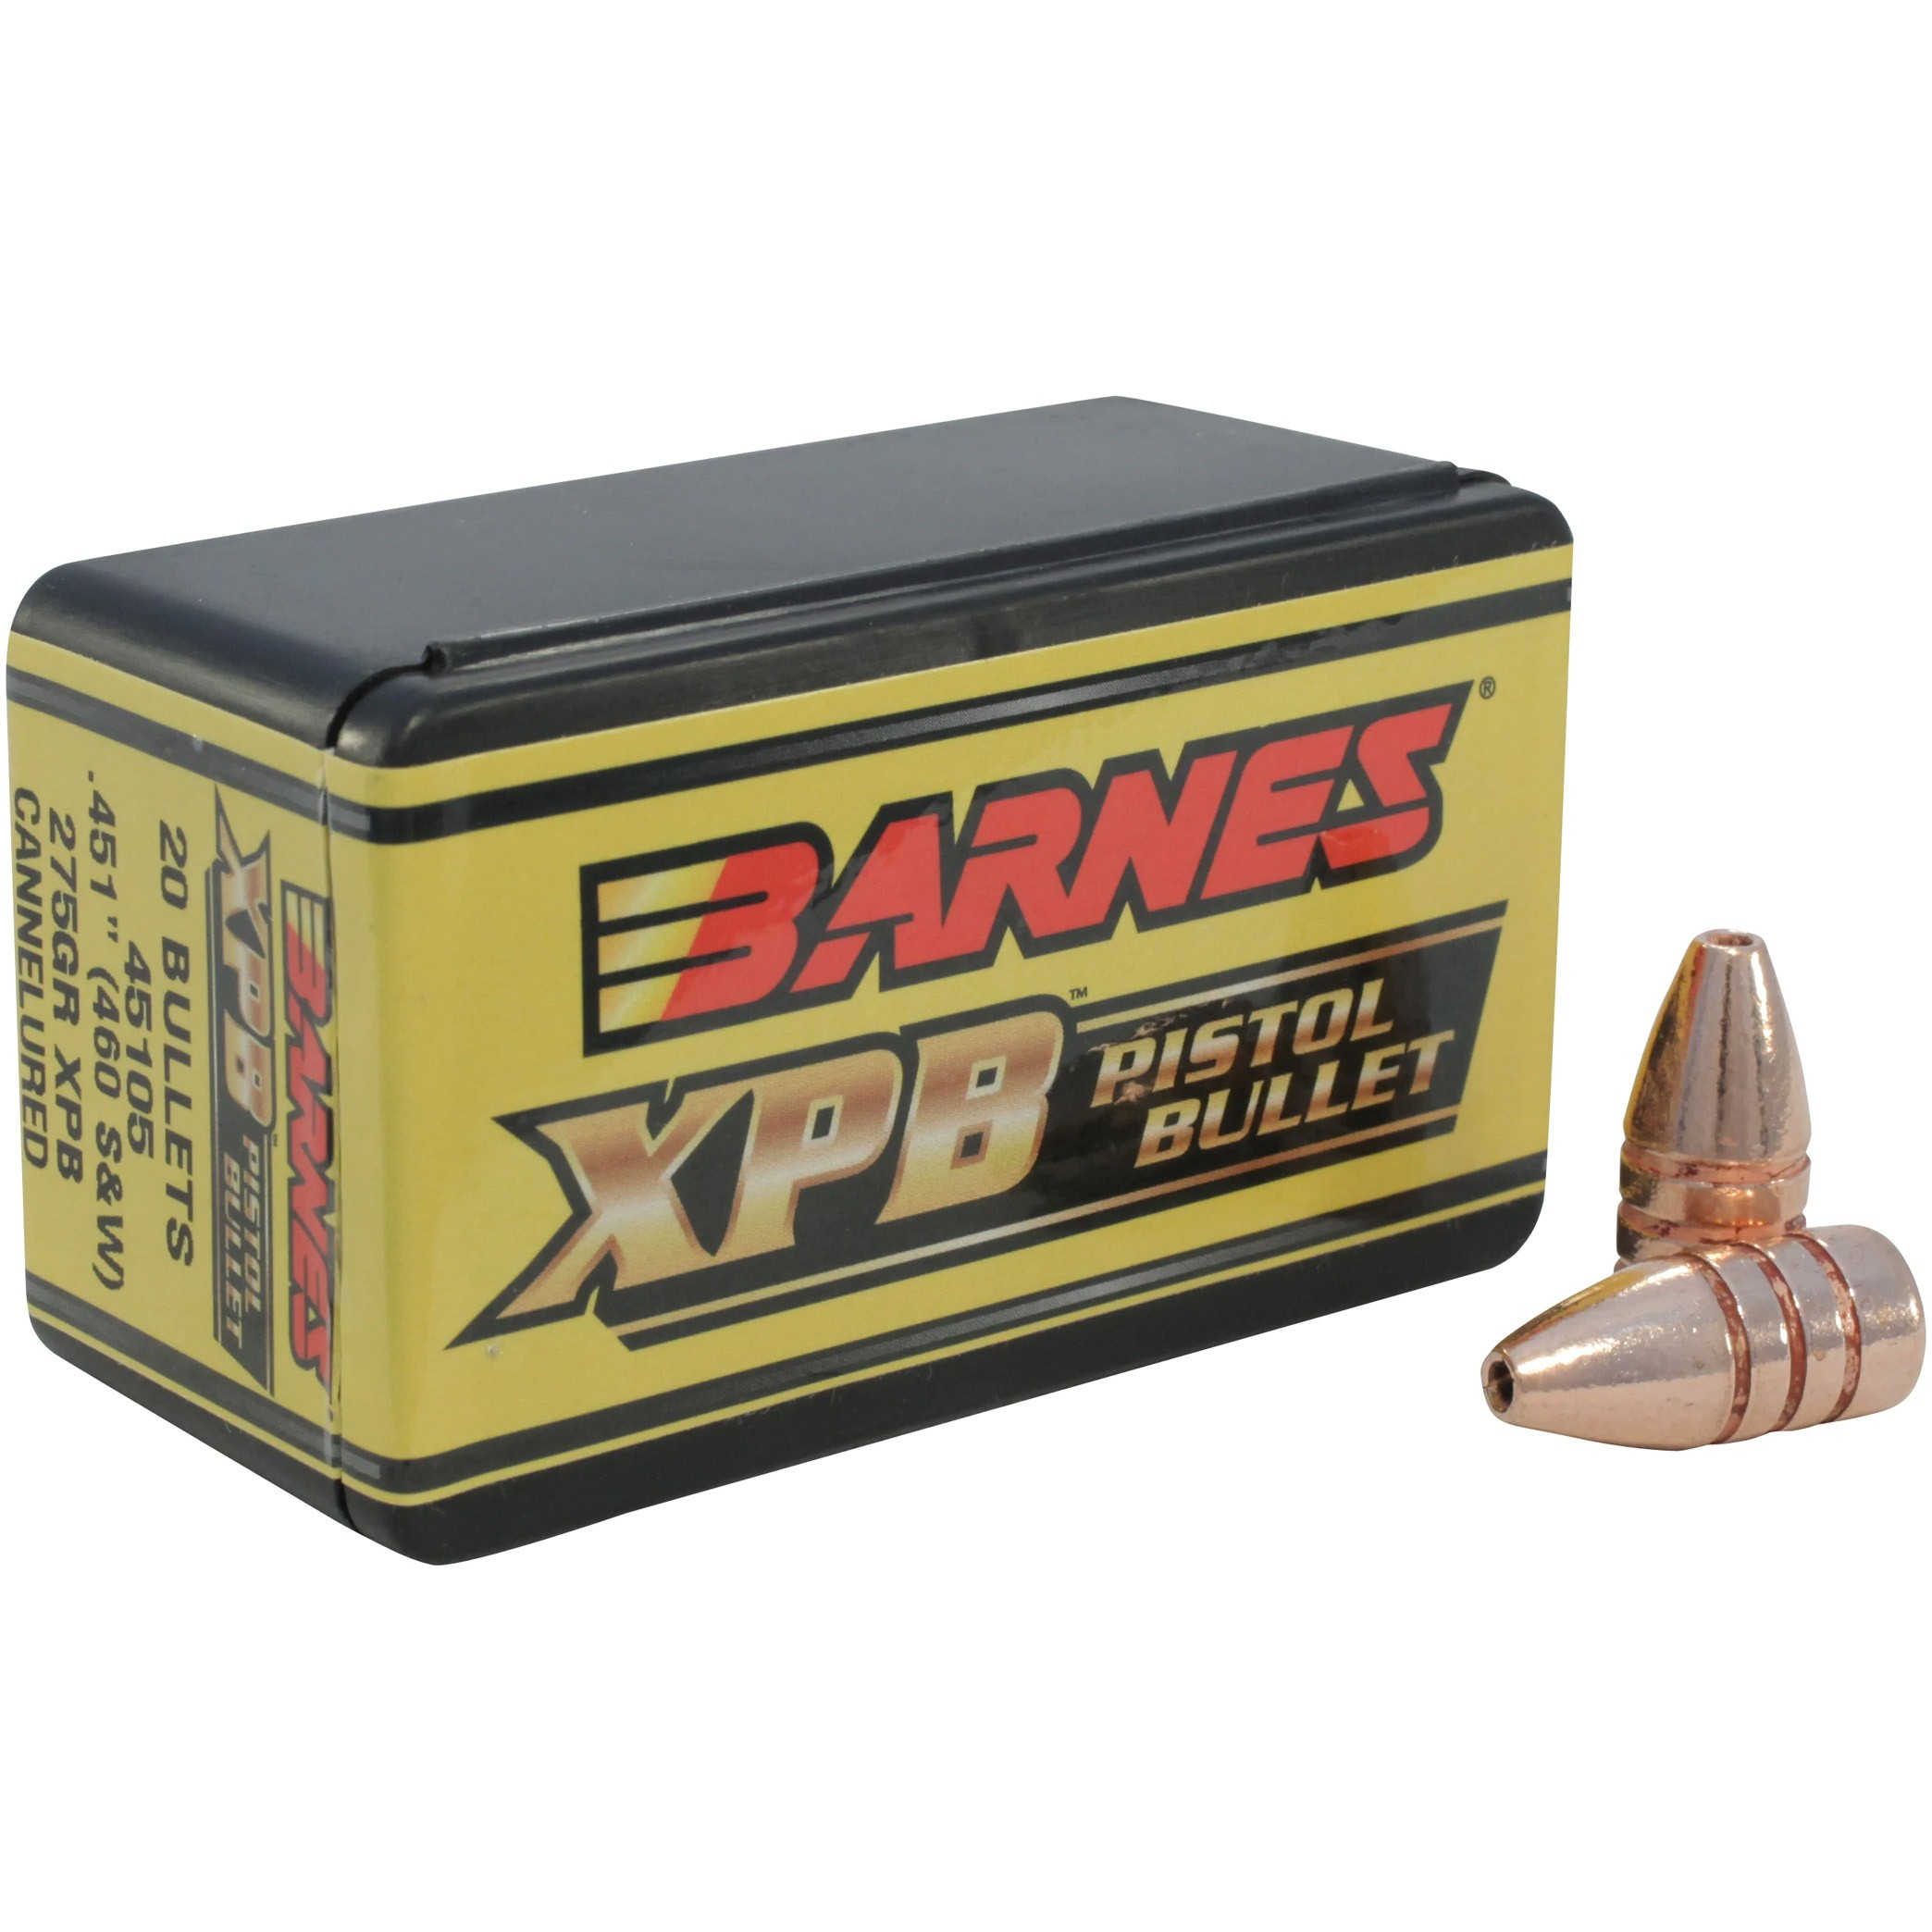 Barnes XPB 460 Smith & Wesson 20rd Bullet